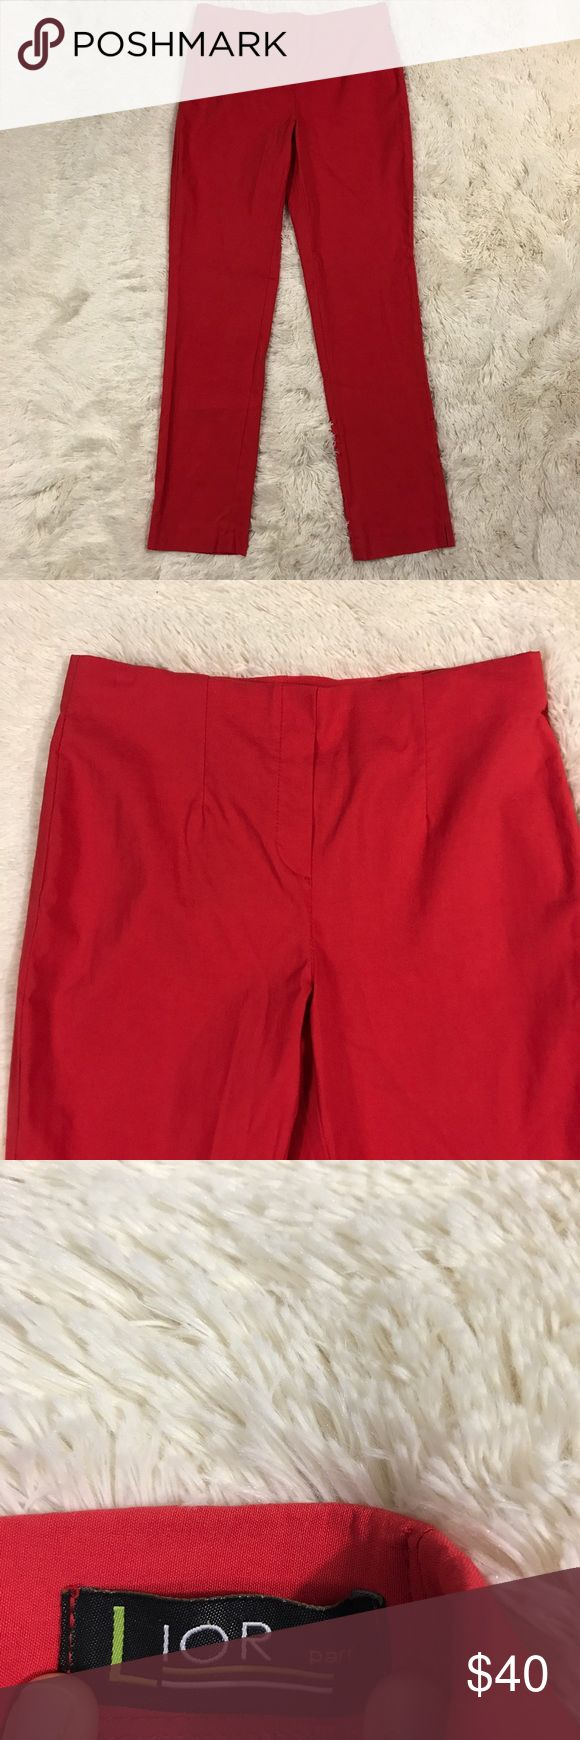 "🇺🇸SALE🇺🇸Lior Paris Lize Straight Leg Pants Women's size T3 (Euro sized - equals US 6/8) red Lion Paris Lize stretch straight leg, pull on, dress pants. 77% viscose, 20% polyamide, 3% elasthanne. Comes from a smoke free home! Missing the size tag but they measure the same as a T3 in this style.   Measurements:  Waist - 15 1/2"" (stretch waist) Length - 38 1/2"" Inseam - 29 1/2""  I have another pair of these in my store that are the same size. I would be happy to make a great deal if you…"